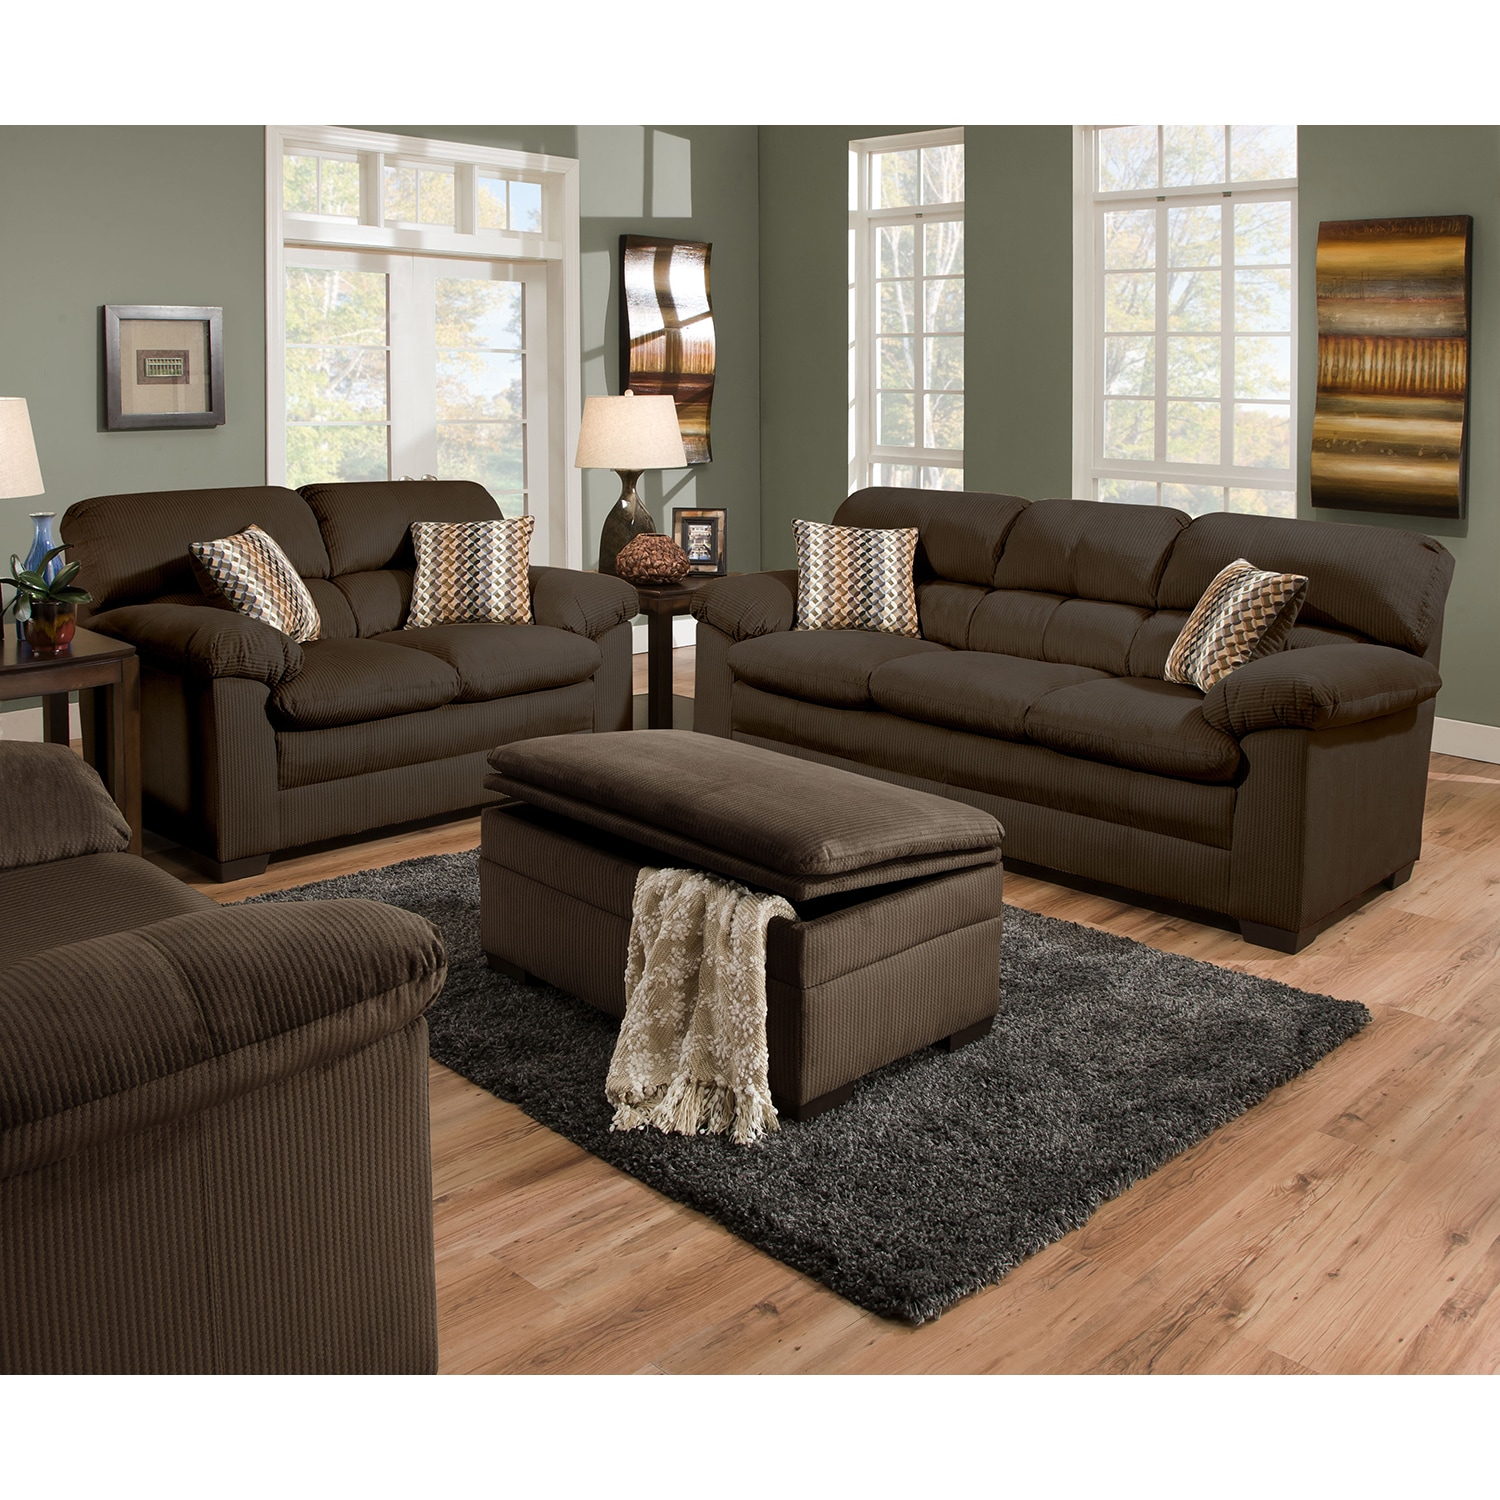 Simmons Upholstery Lakewood Cappuccino Sofa (Sofa), Brown...